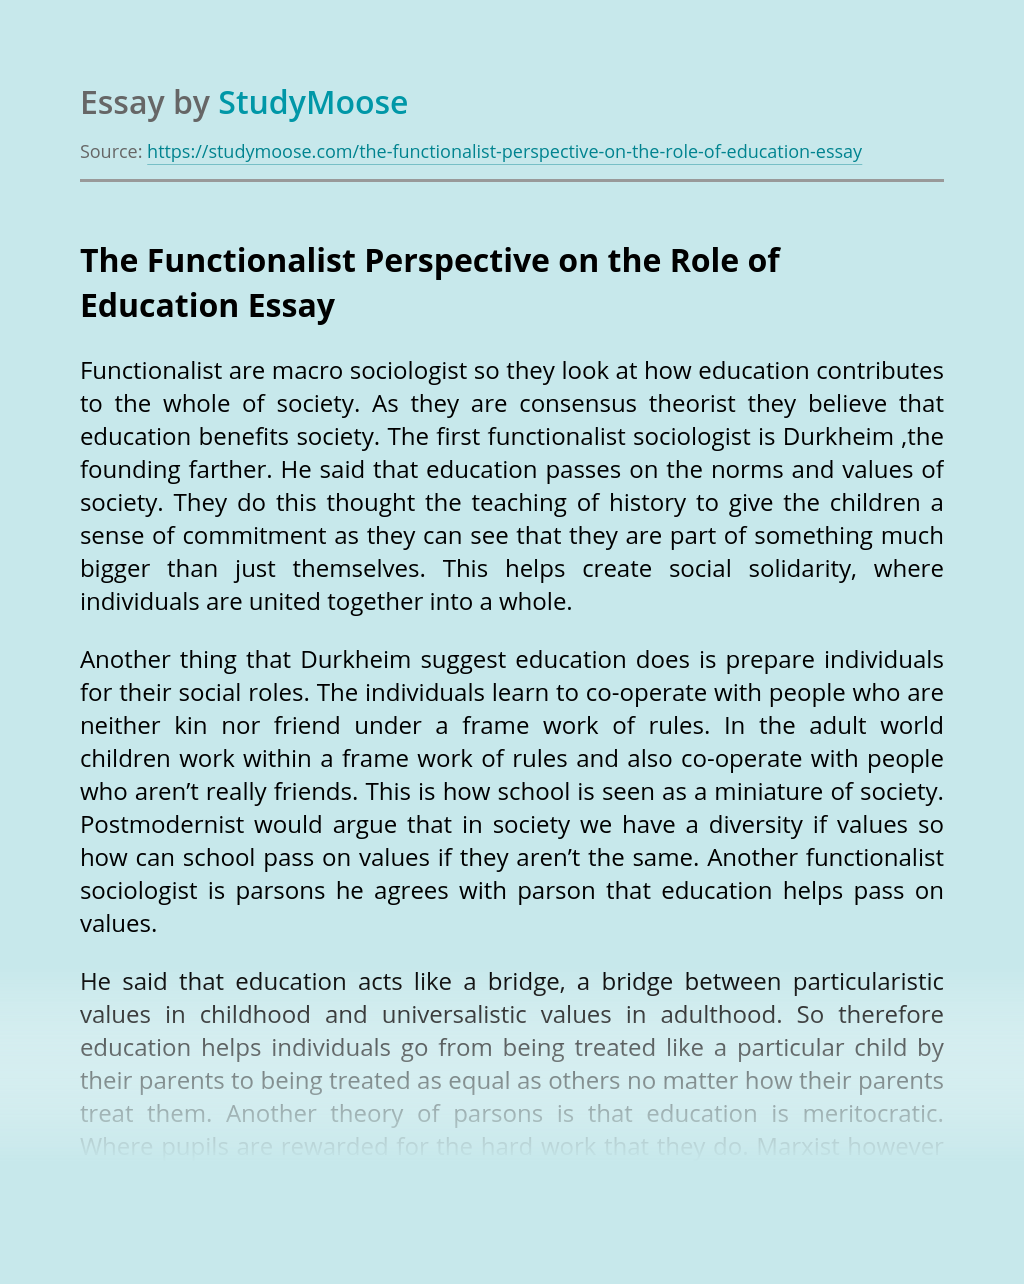 The Functionalist Perspective on the Role of Education